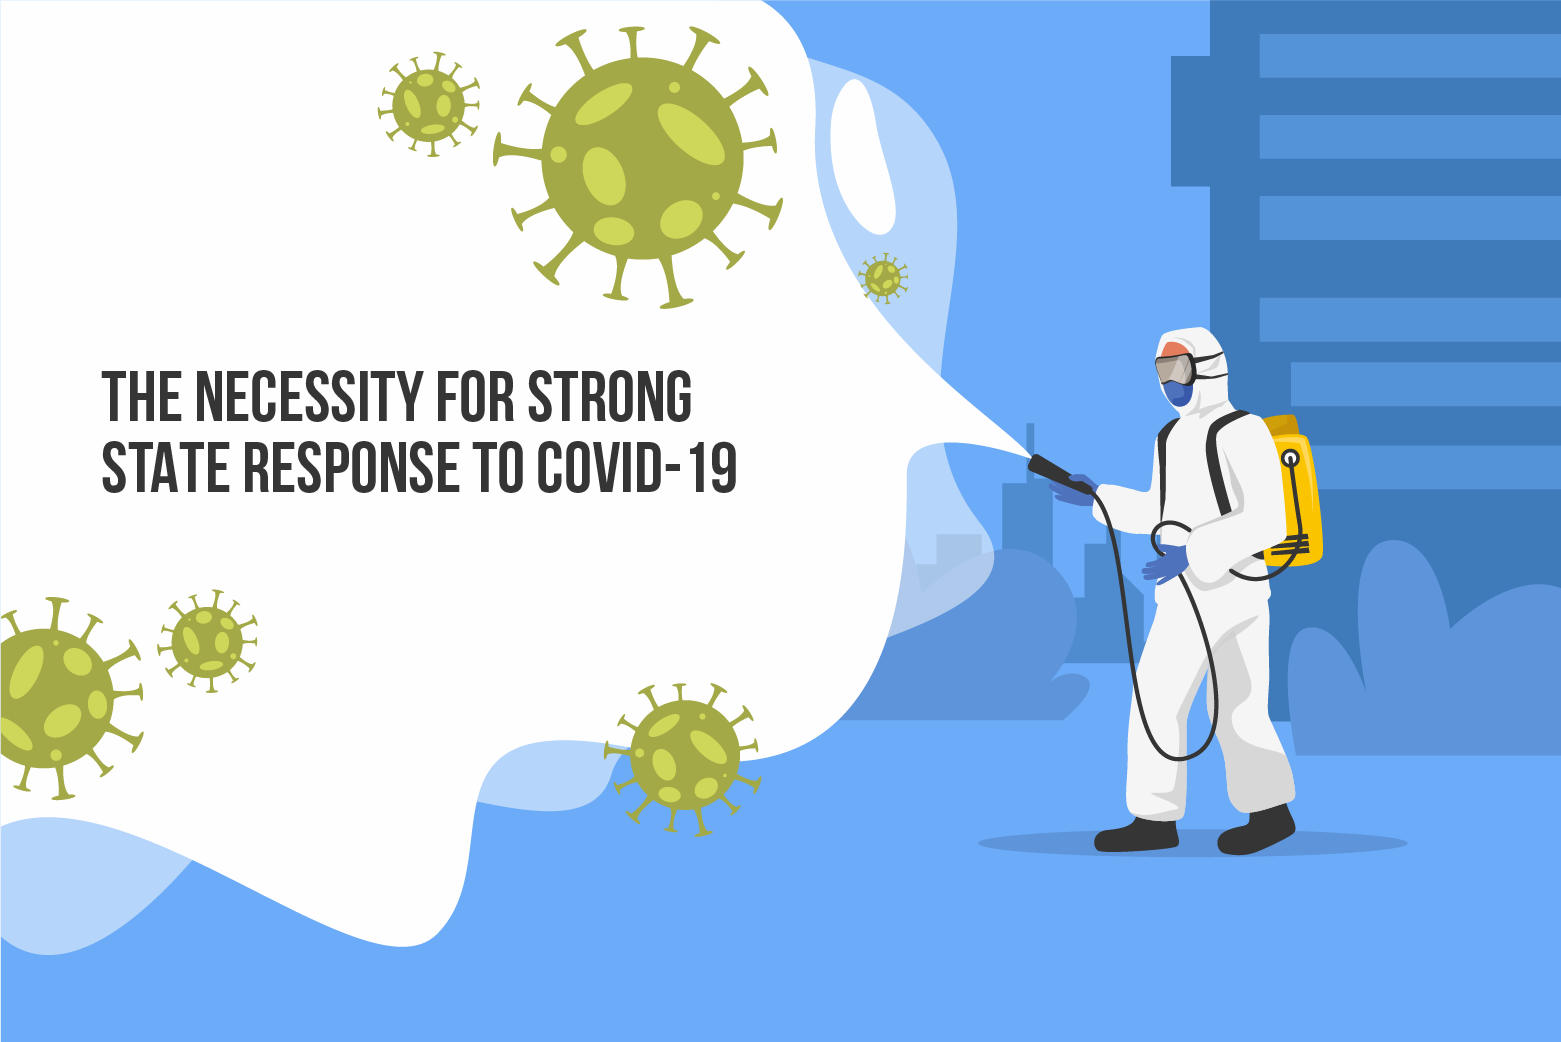 Covid-19 State Response